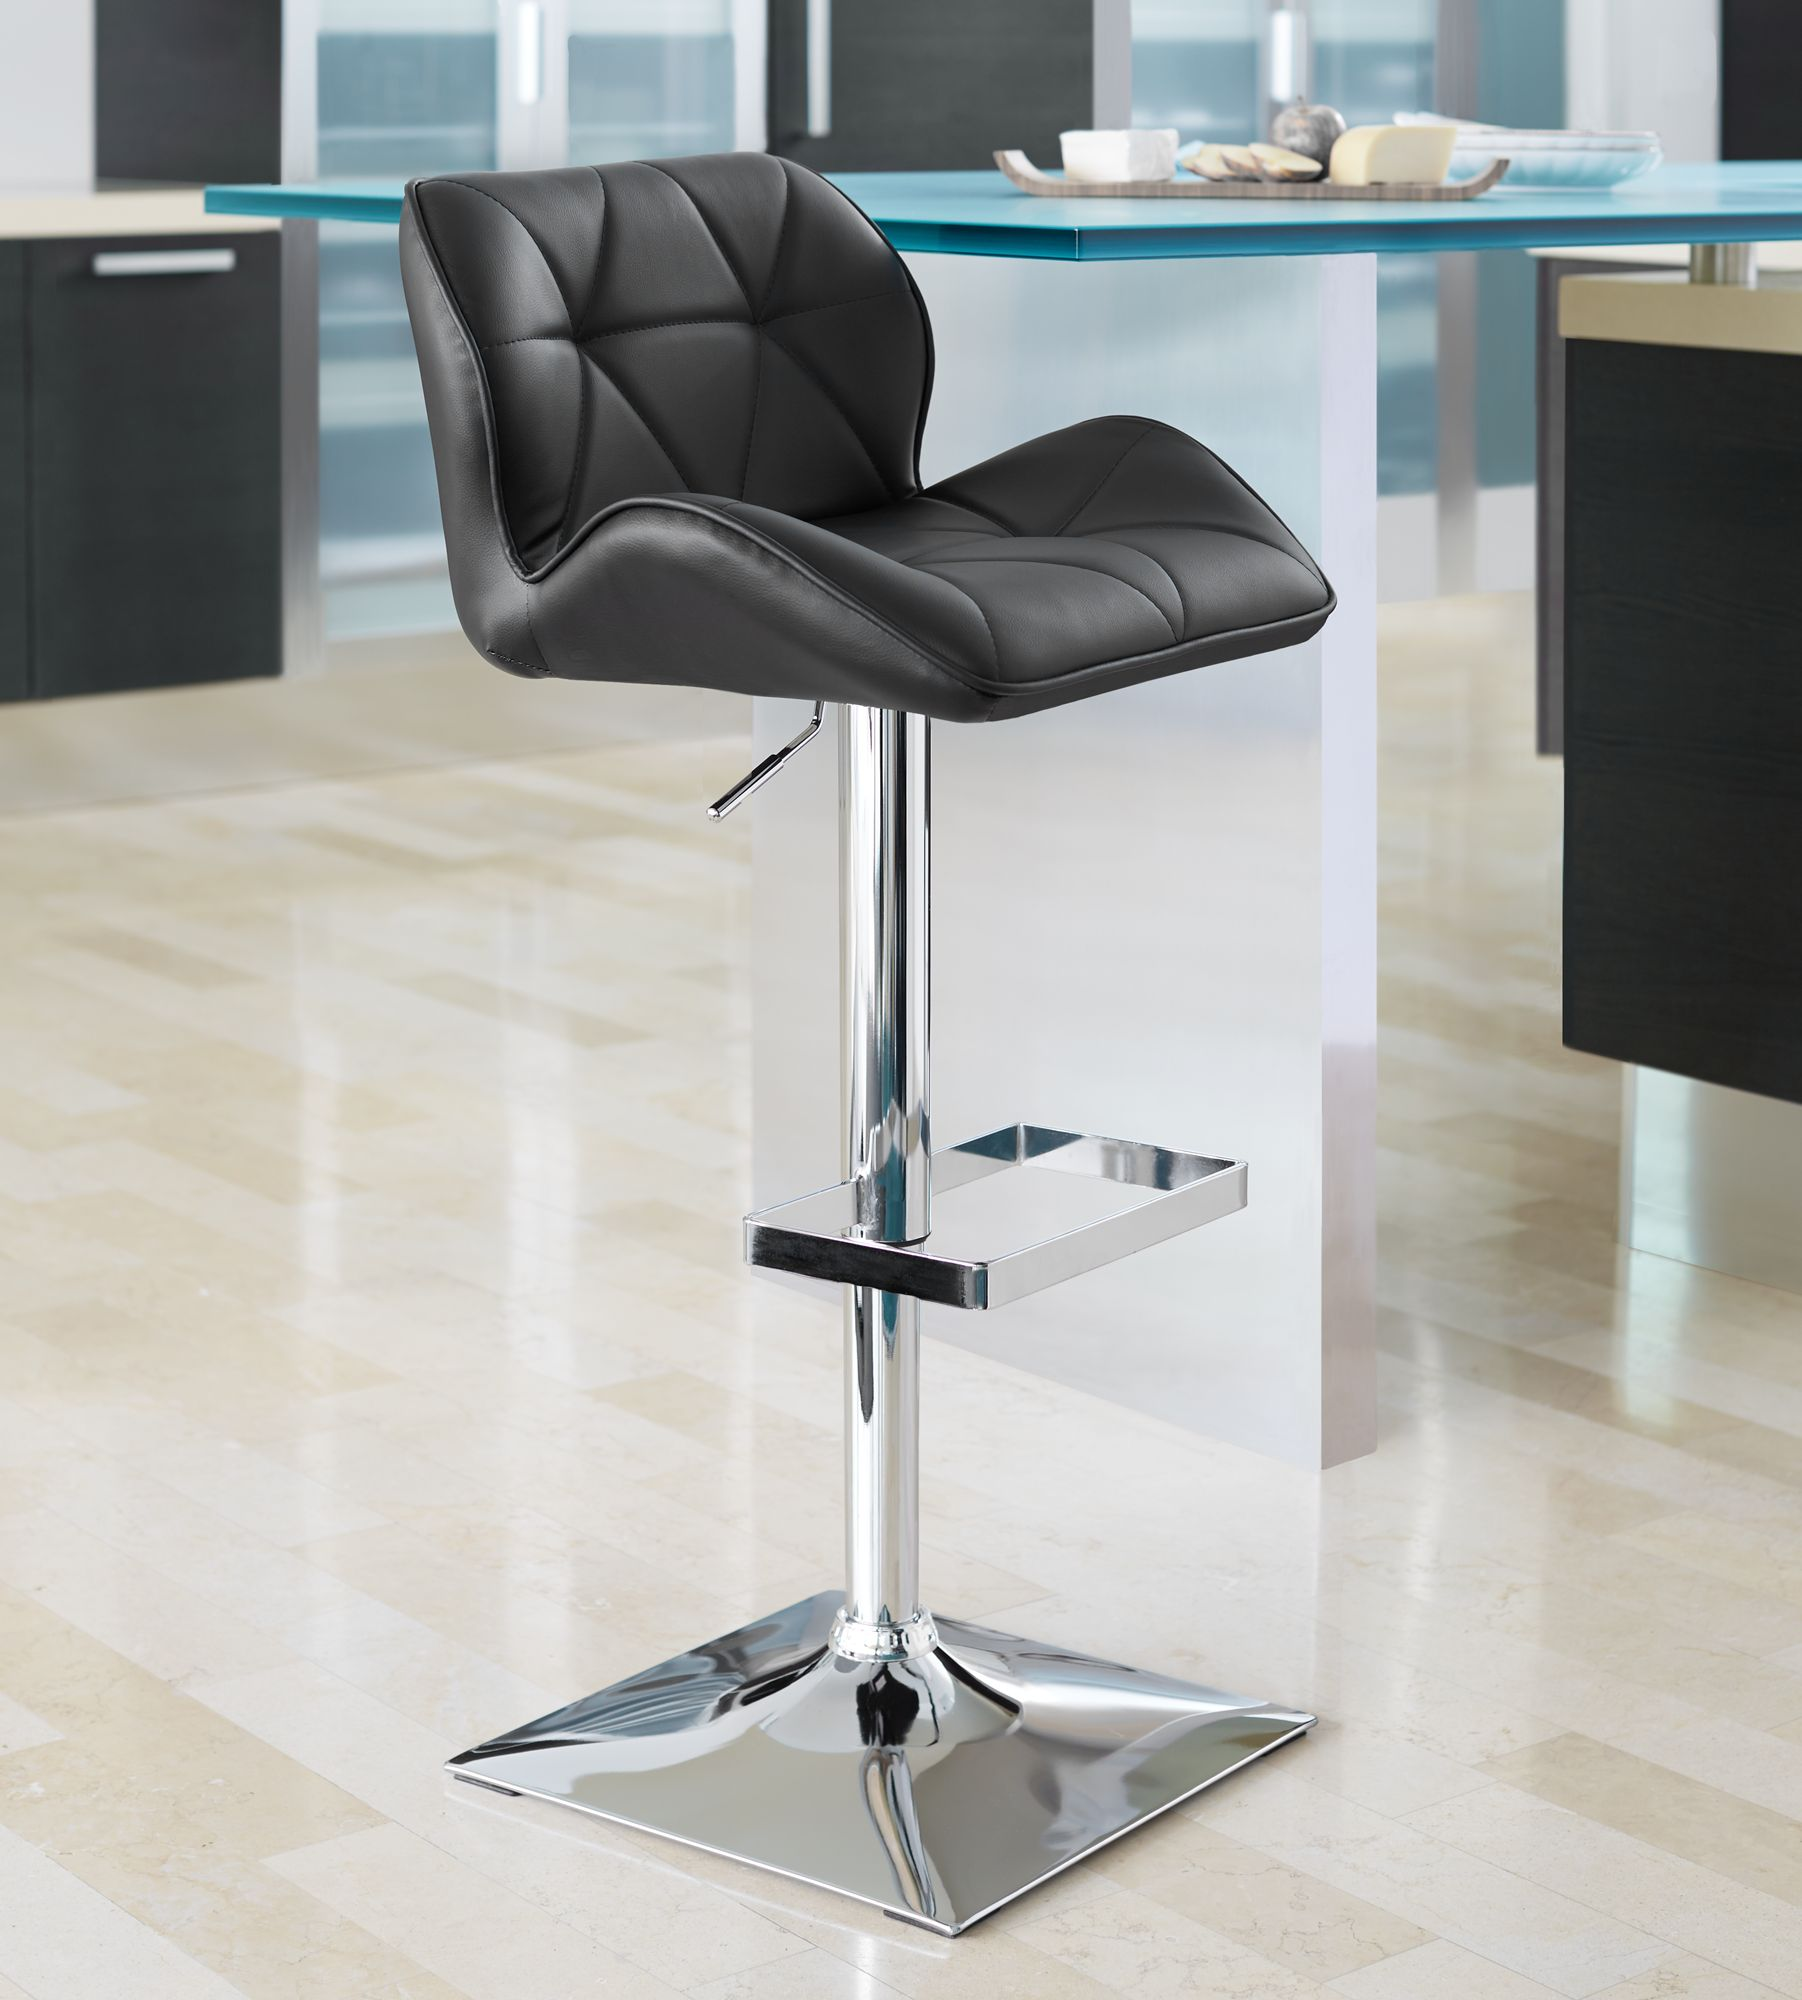 Superieur Boulton Black Faux Leather Adjustable Swivel Bar Stool